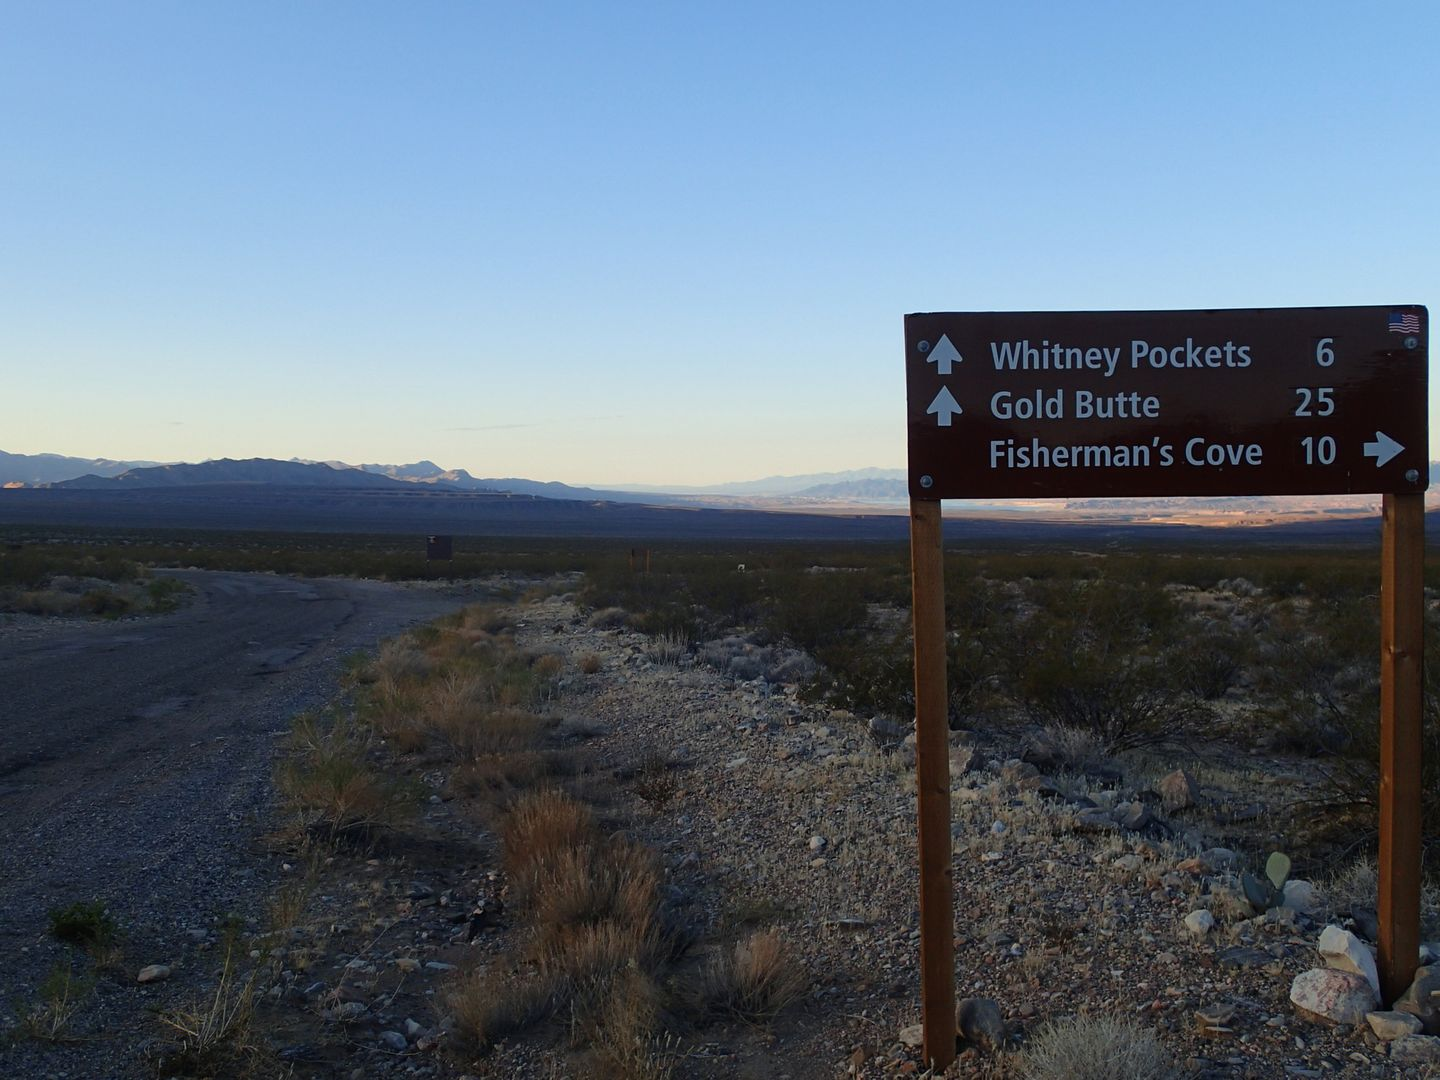 Gold Butte Backcountry Byway - Waypoint 5: Virgin River Access Road to Fishermans Cove